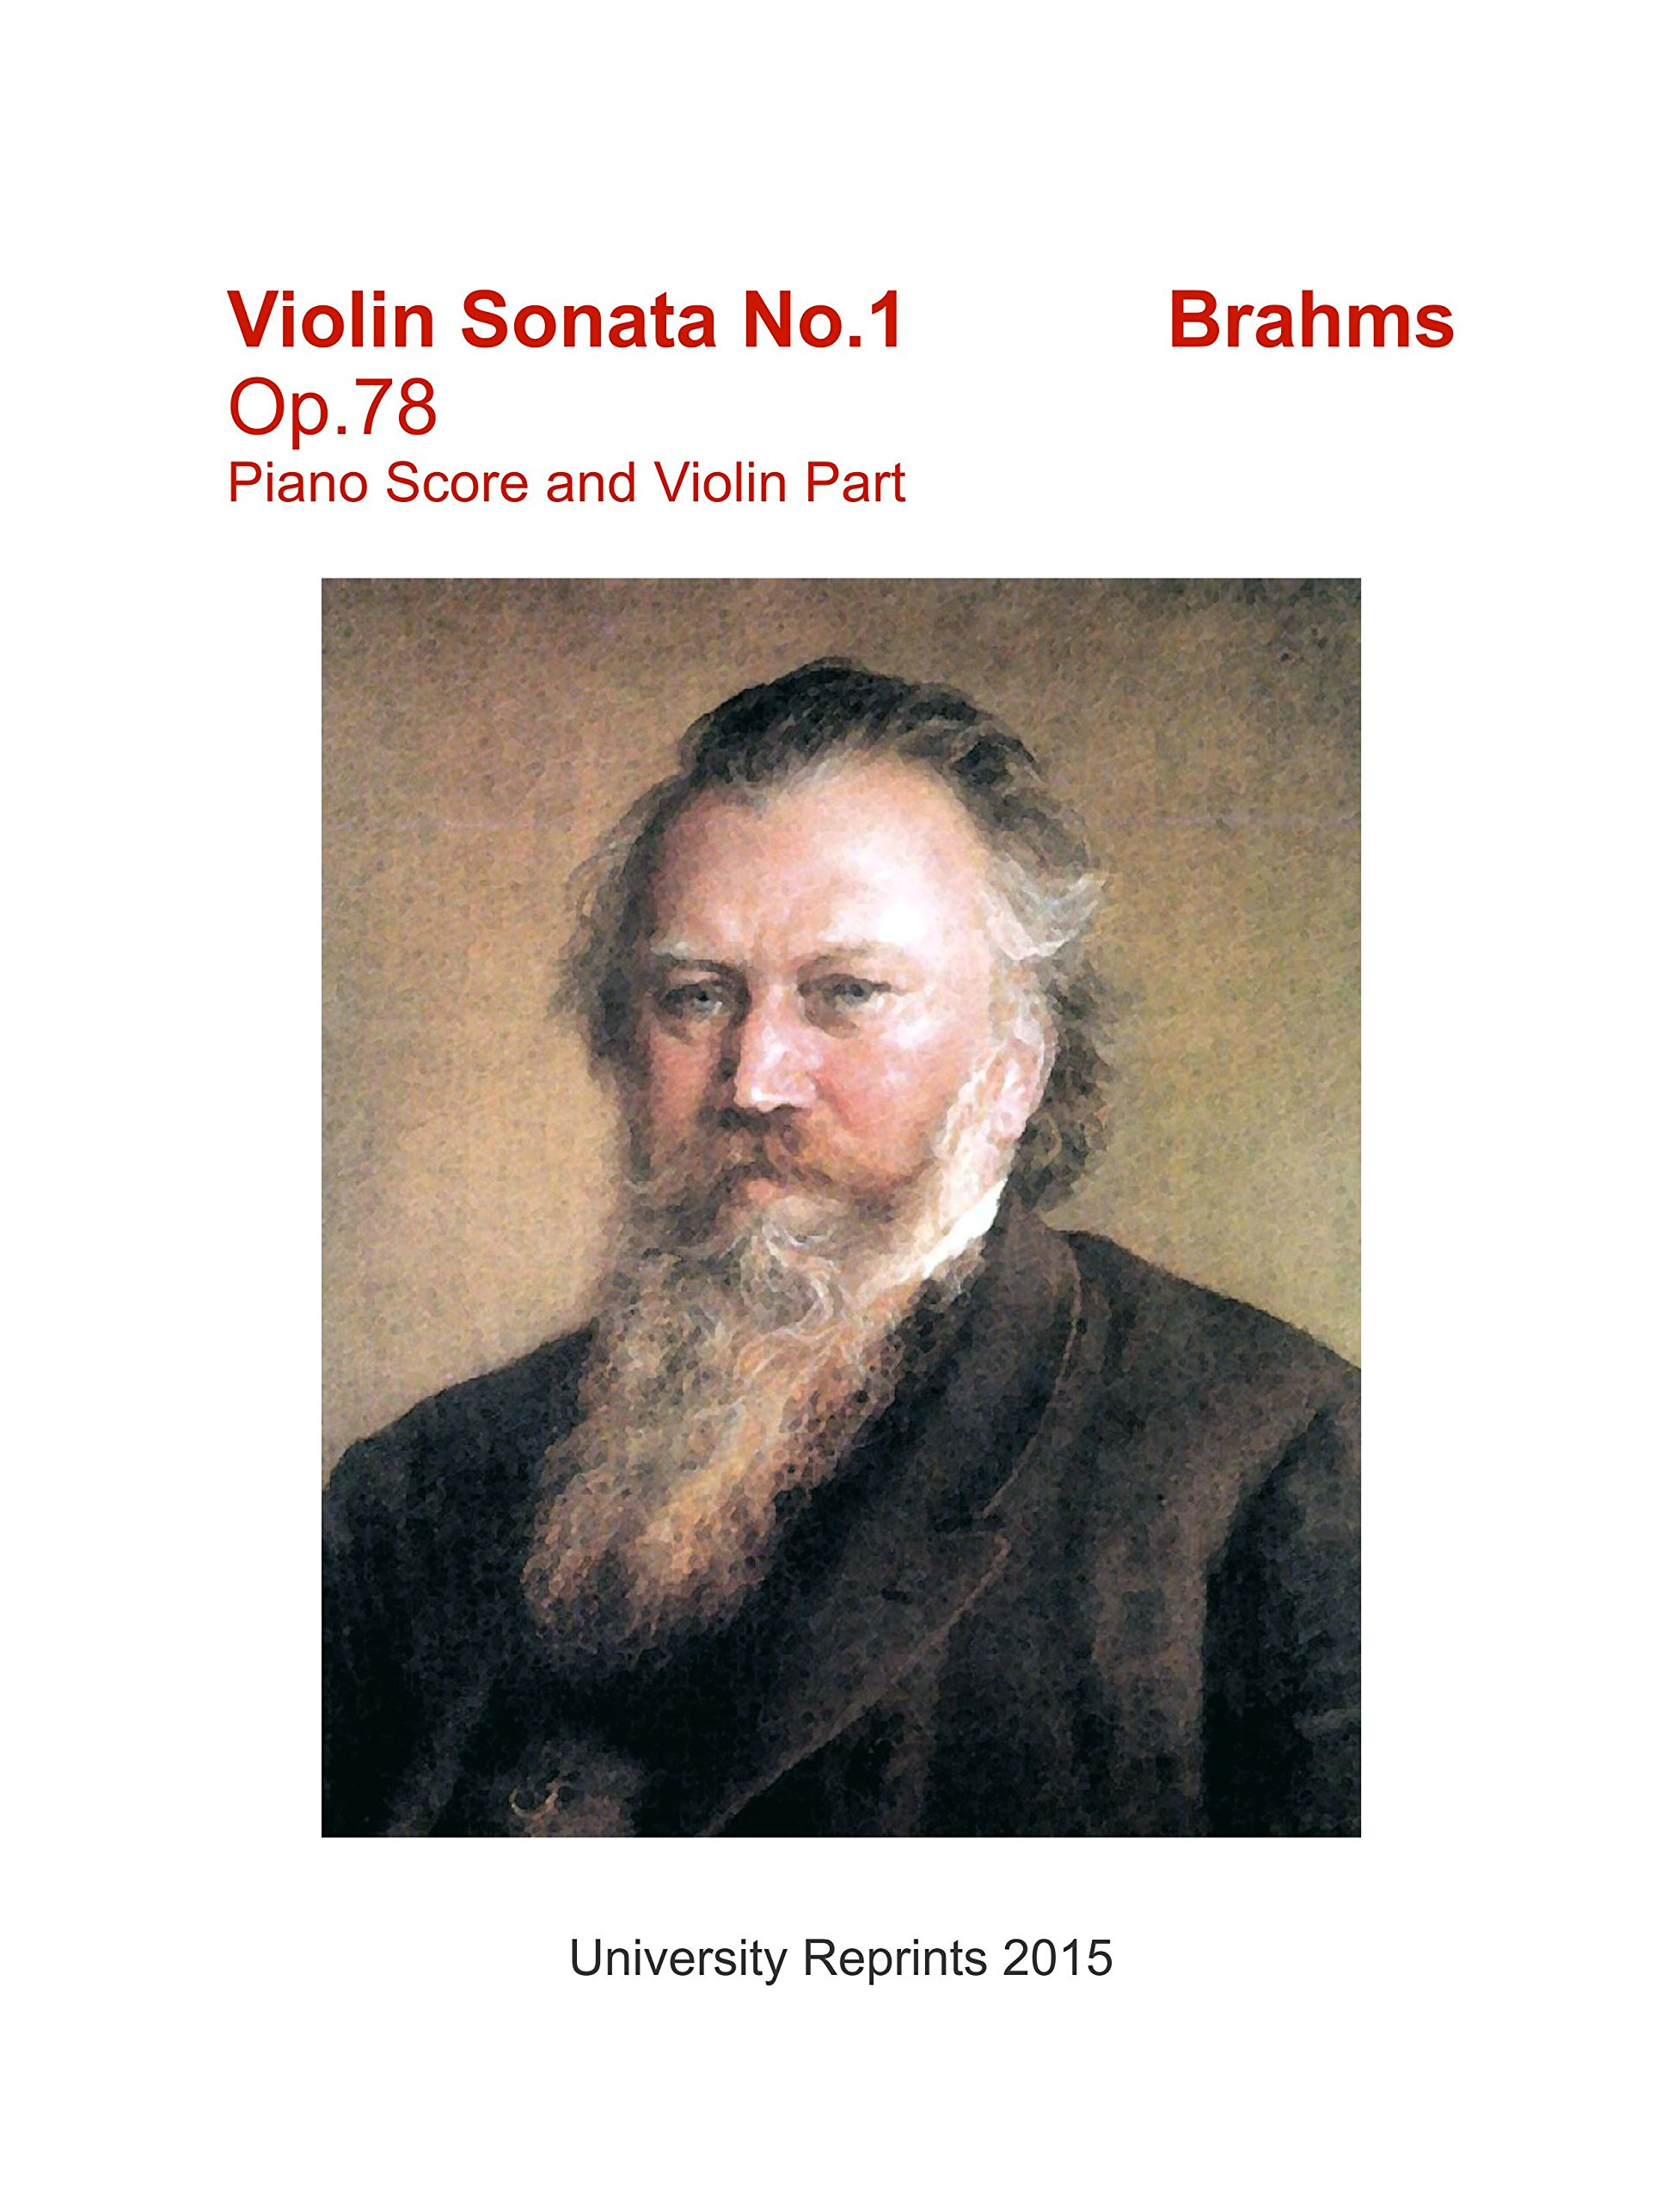 Download Violin Sonata No.1, Op.78 by Johannes Brahms. Piano Score with Violin and Separate Violin Part. [Student Loose Leaf Facsimile Edition. Re-Imaged from Original for Greater Clarity. 2015] ebook